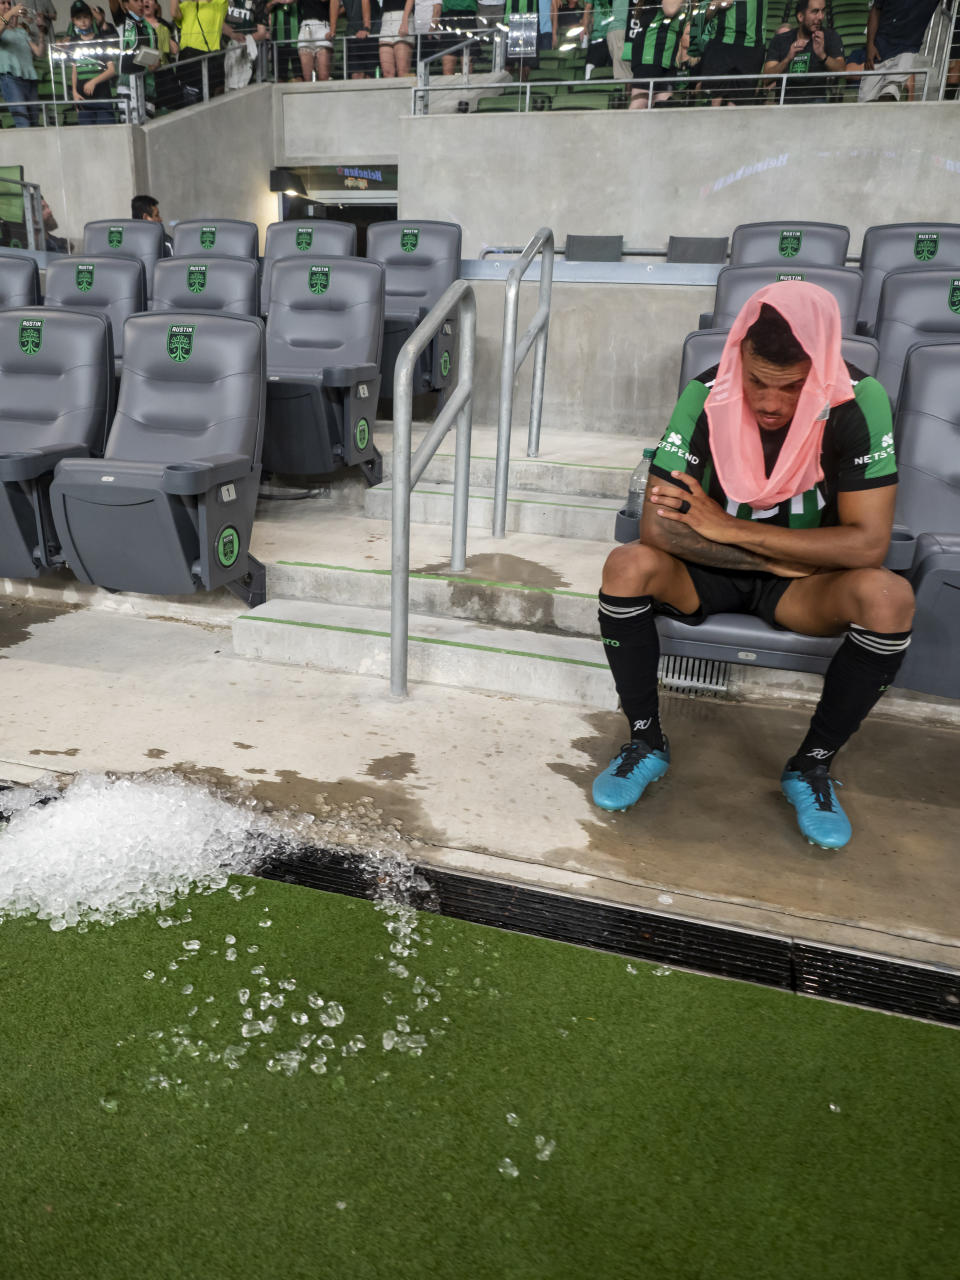 Austin FC defender Julio Cascante sits on the bench after the team's loss to the San Jose Earthquakes in an MLS soccer match Saturday, Sept. 18, 2021, in Austin, Texas. The Earthquakes won 4-3. (AP Photo/Michael Thomas)